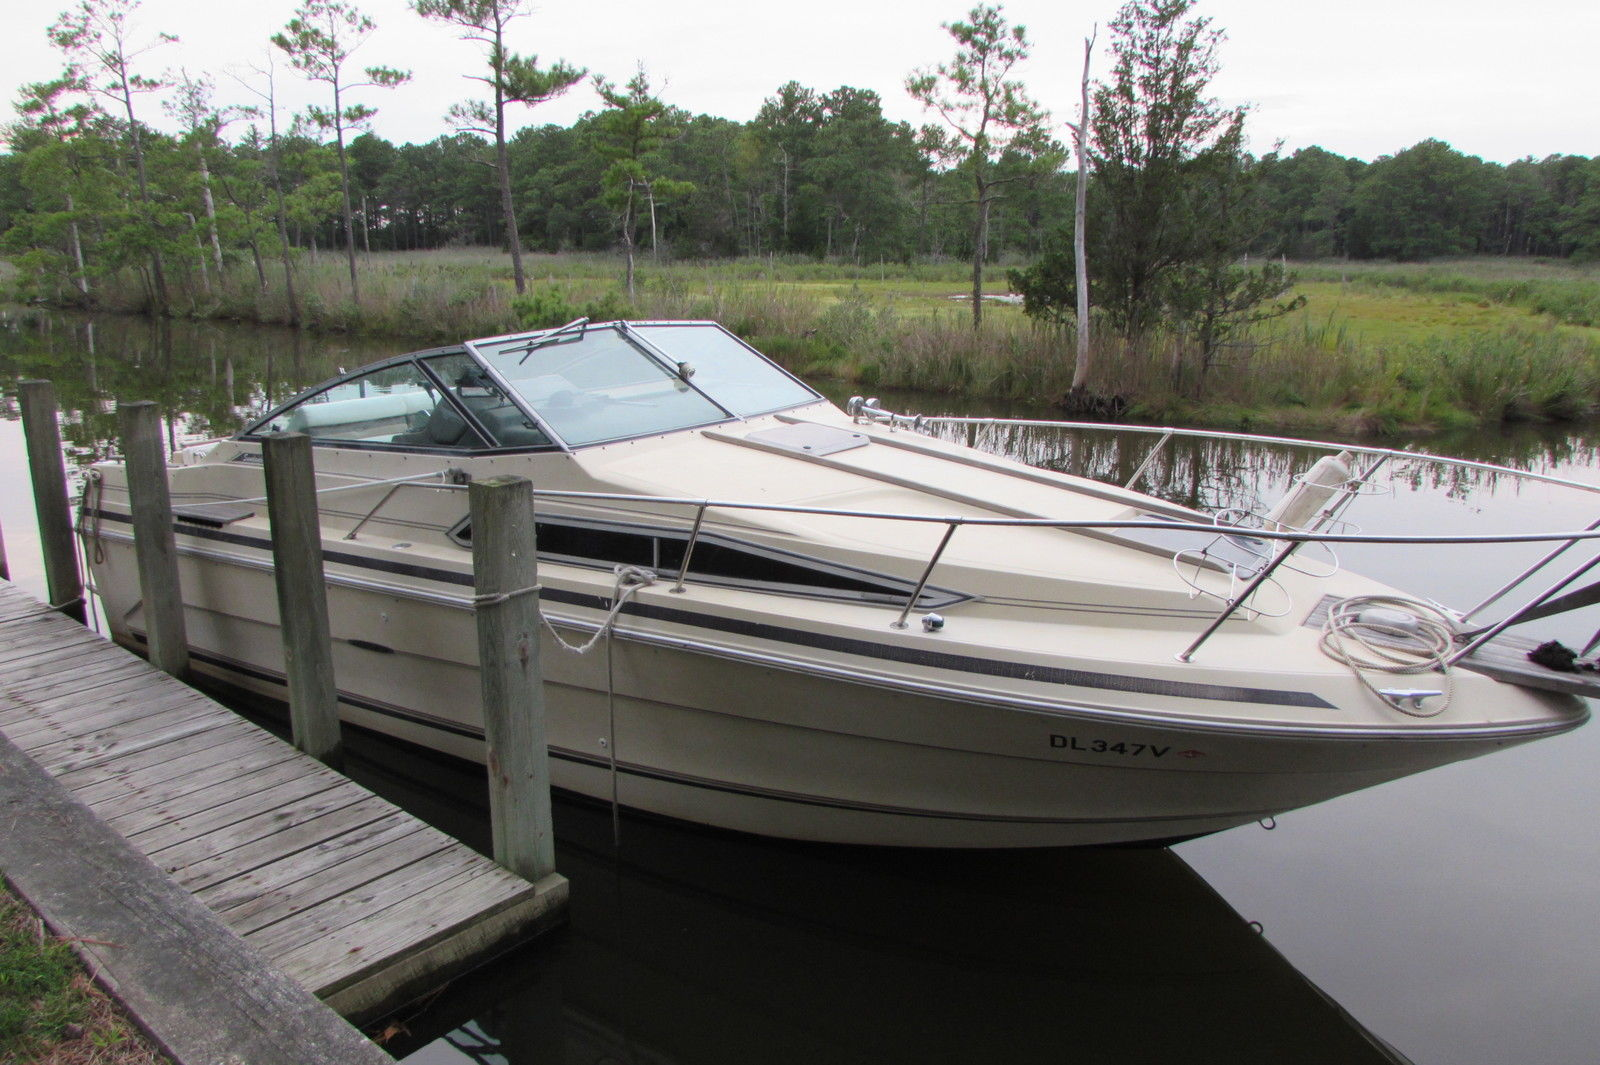 Sea Ray Cabin Cruiser 1986 For Sale For 7 500 Boats